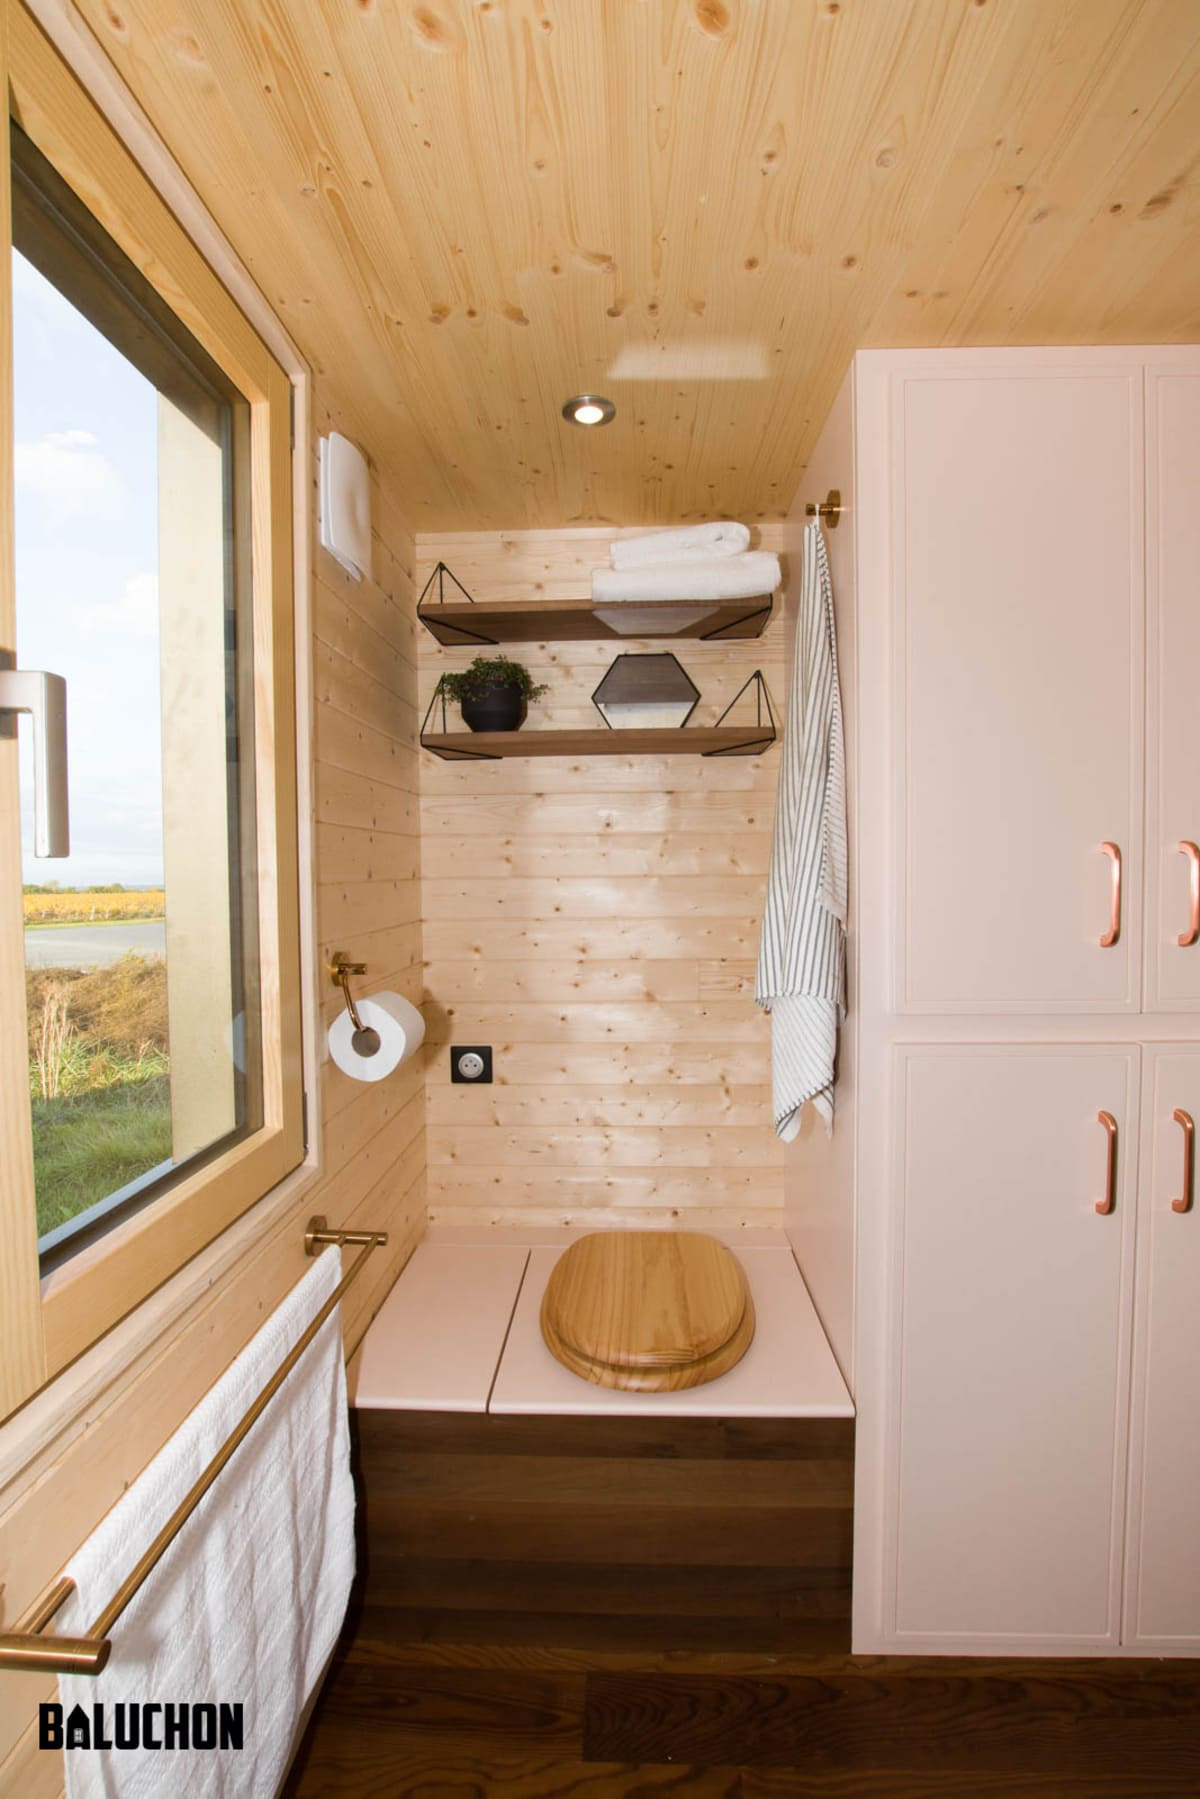 tiny house baluchon 12 1 - A tiny home on wheels: travel meets small living